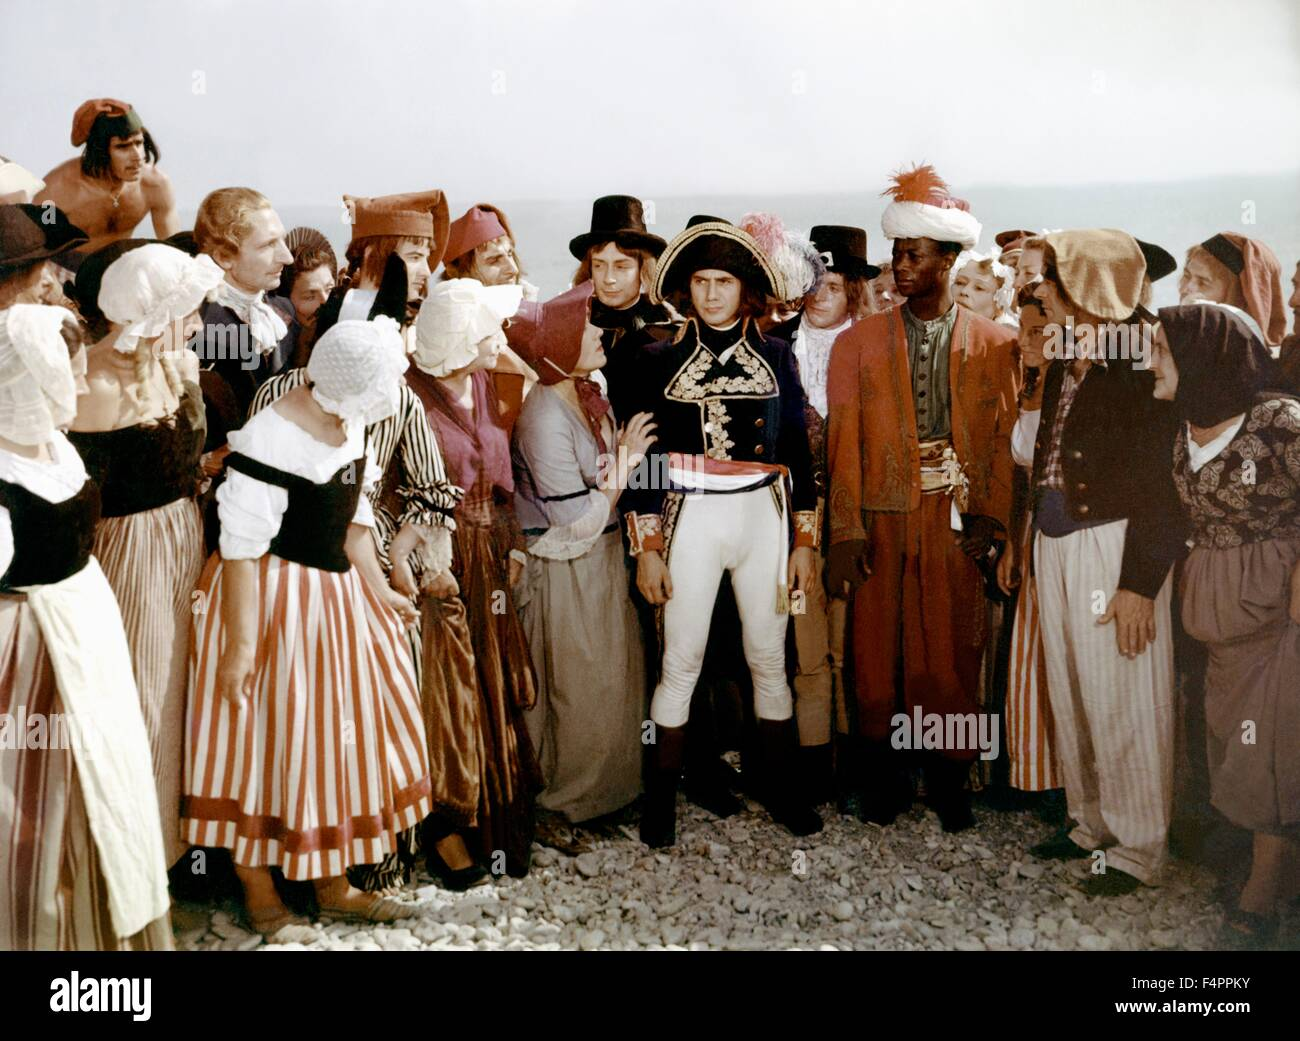 Daniel Gelin / Napoleon / 1954 directed by Sacha Guitry - Stock Image